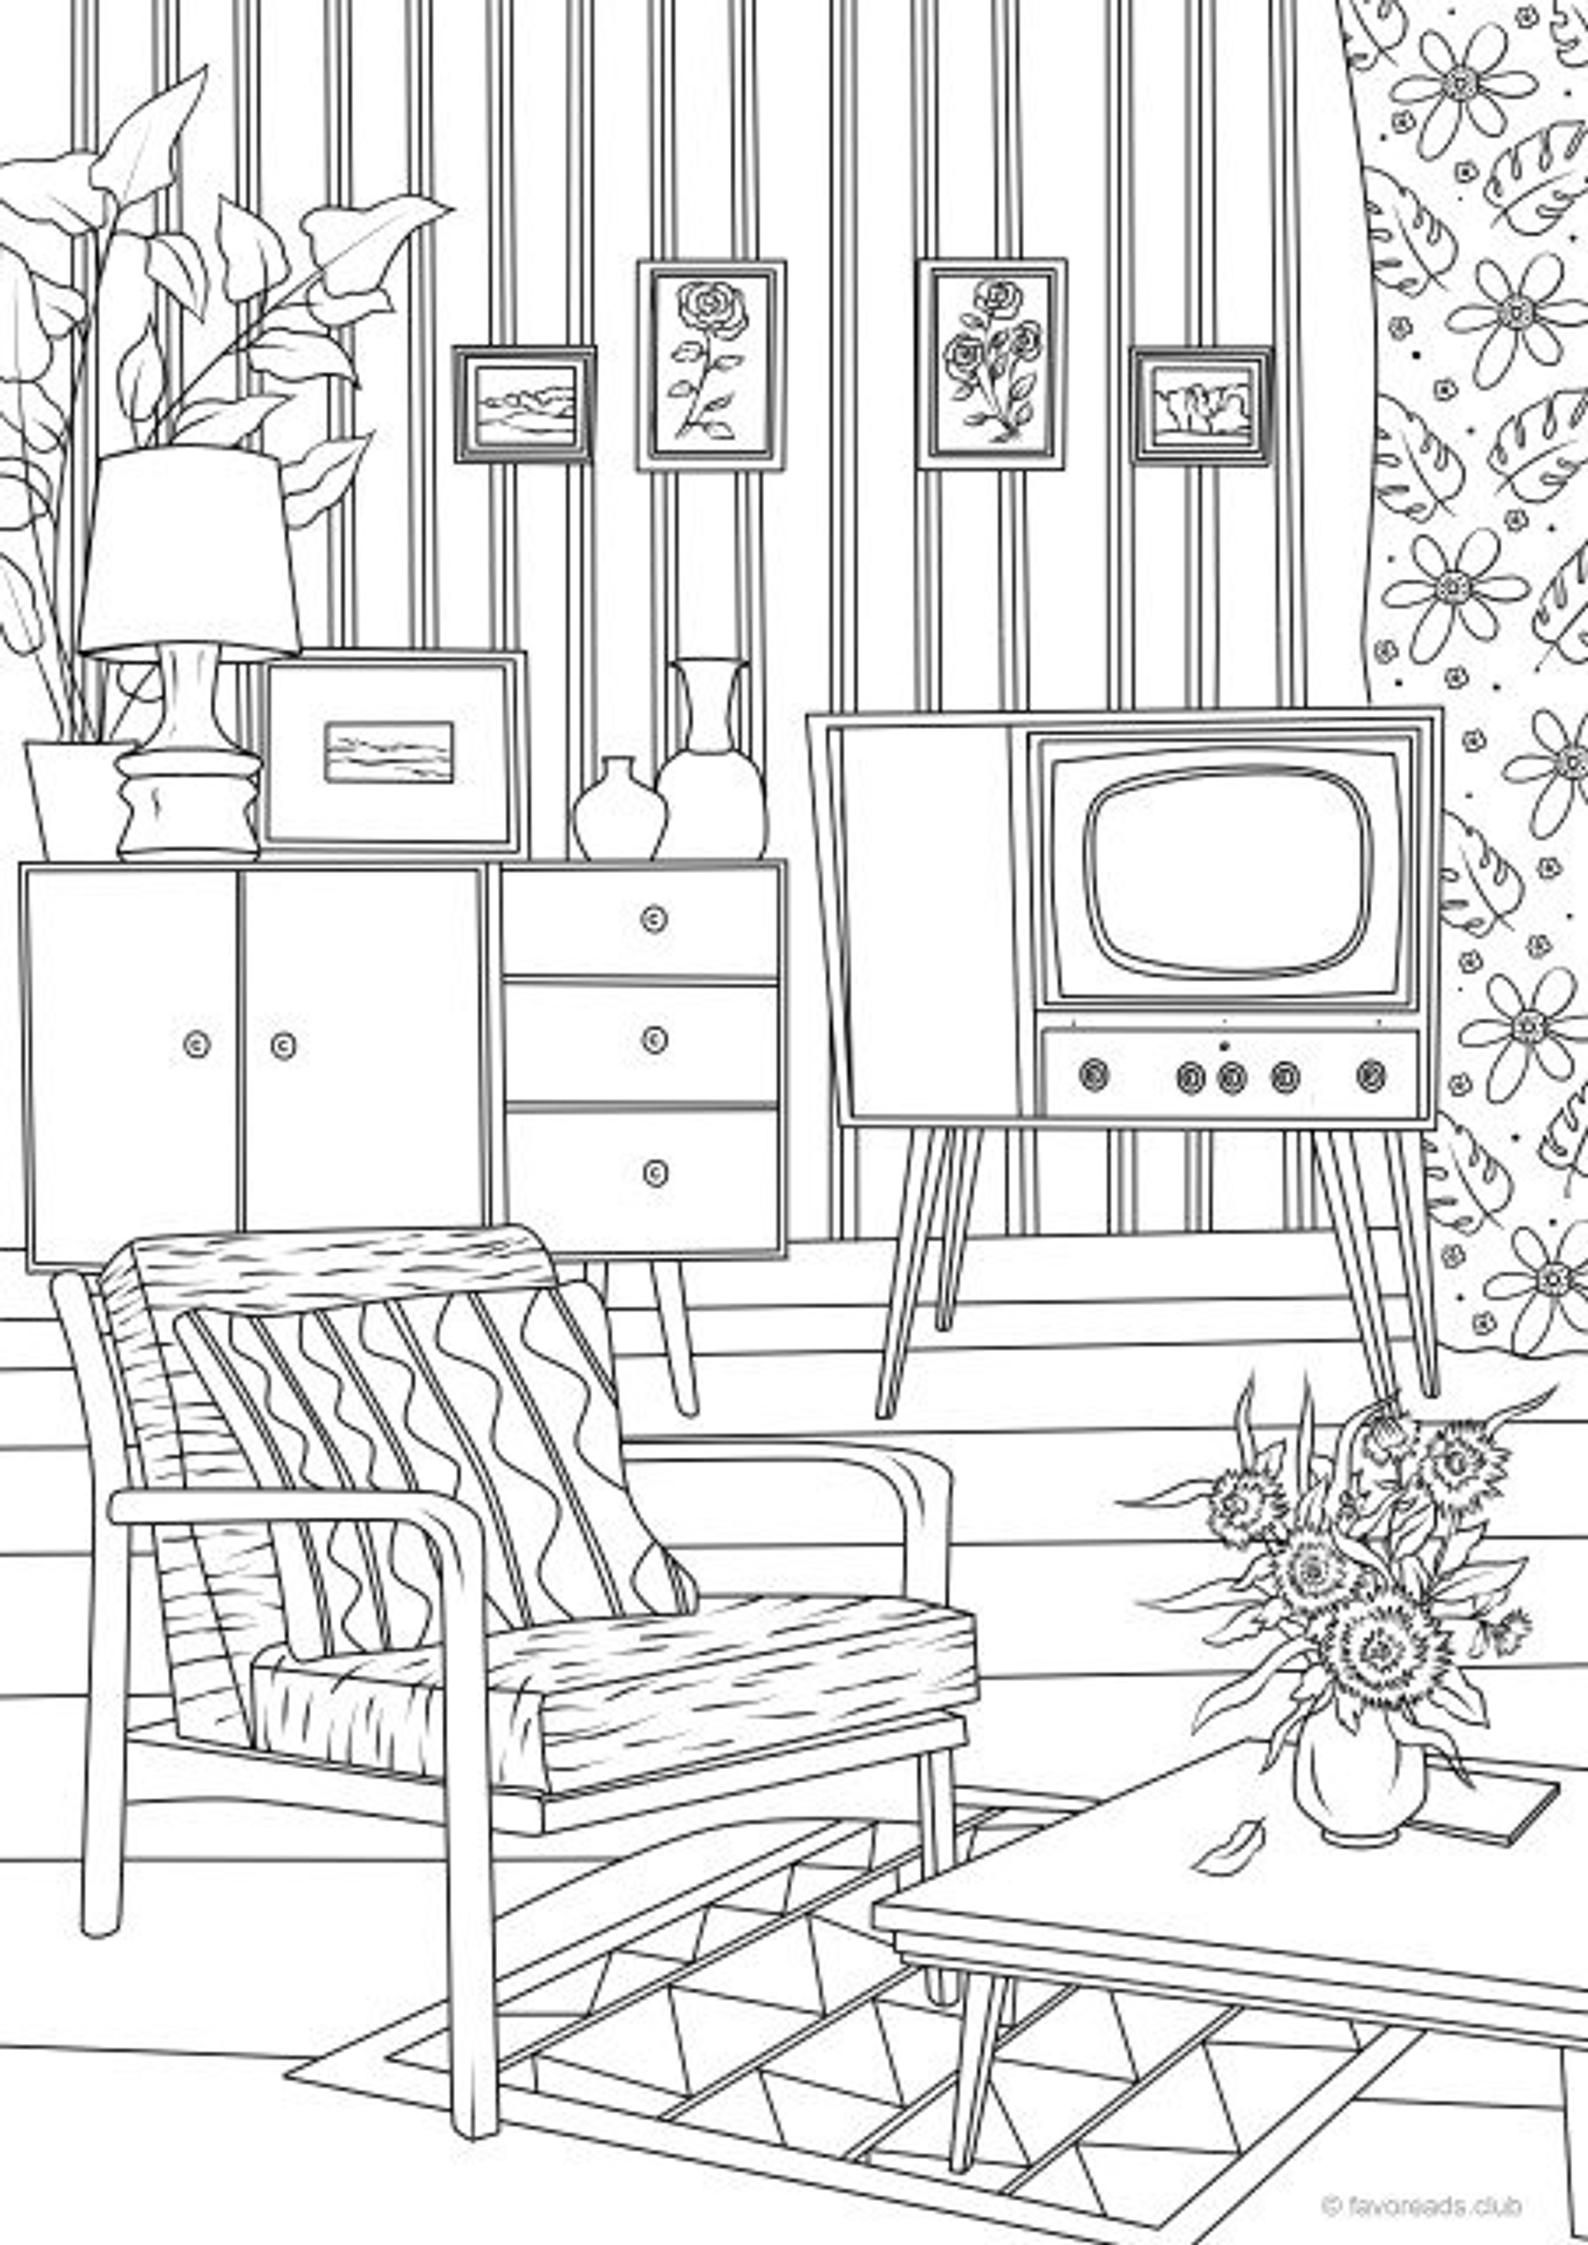 Pin on Coloring books 26